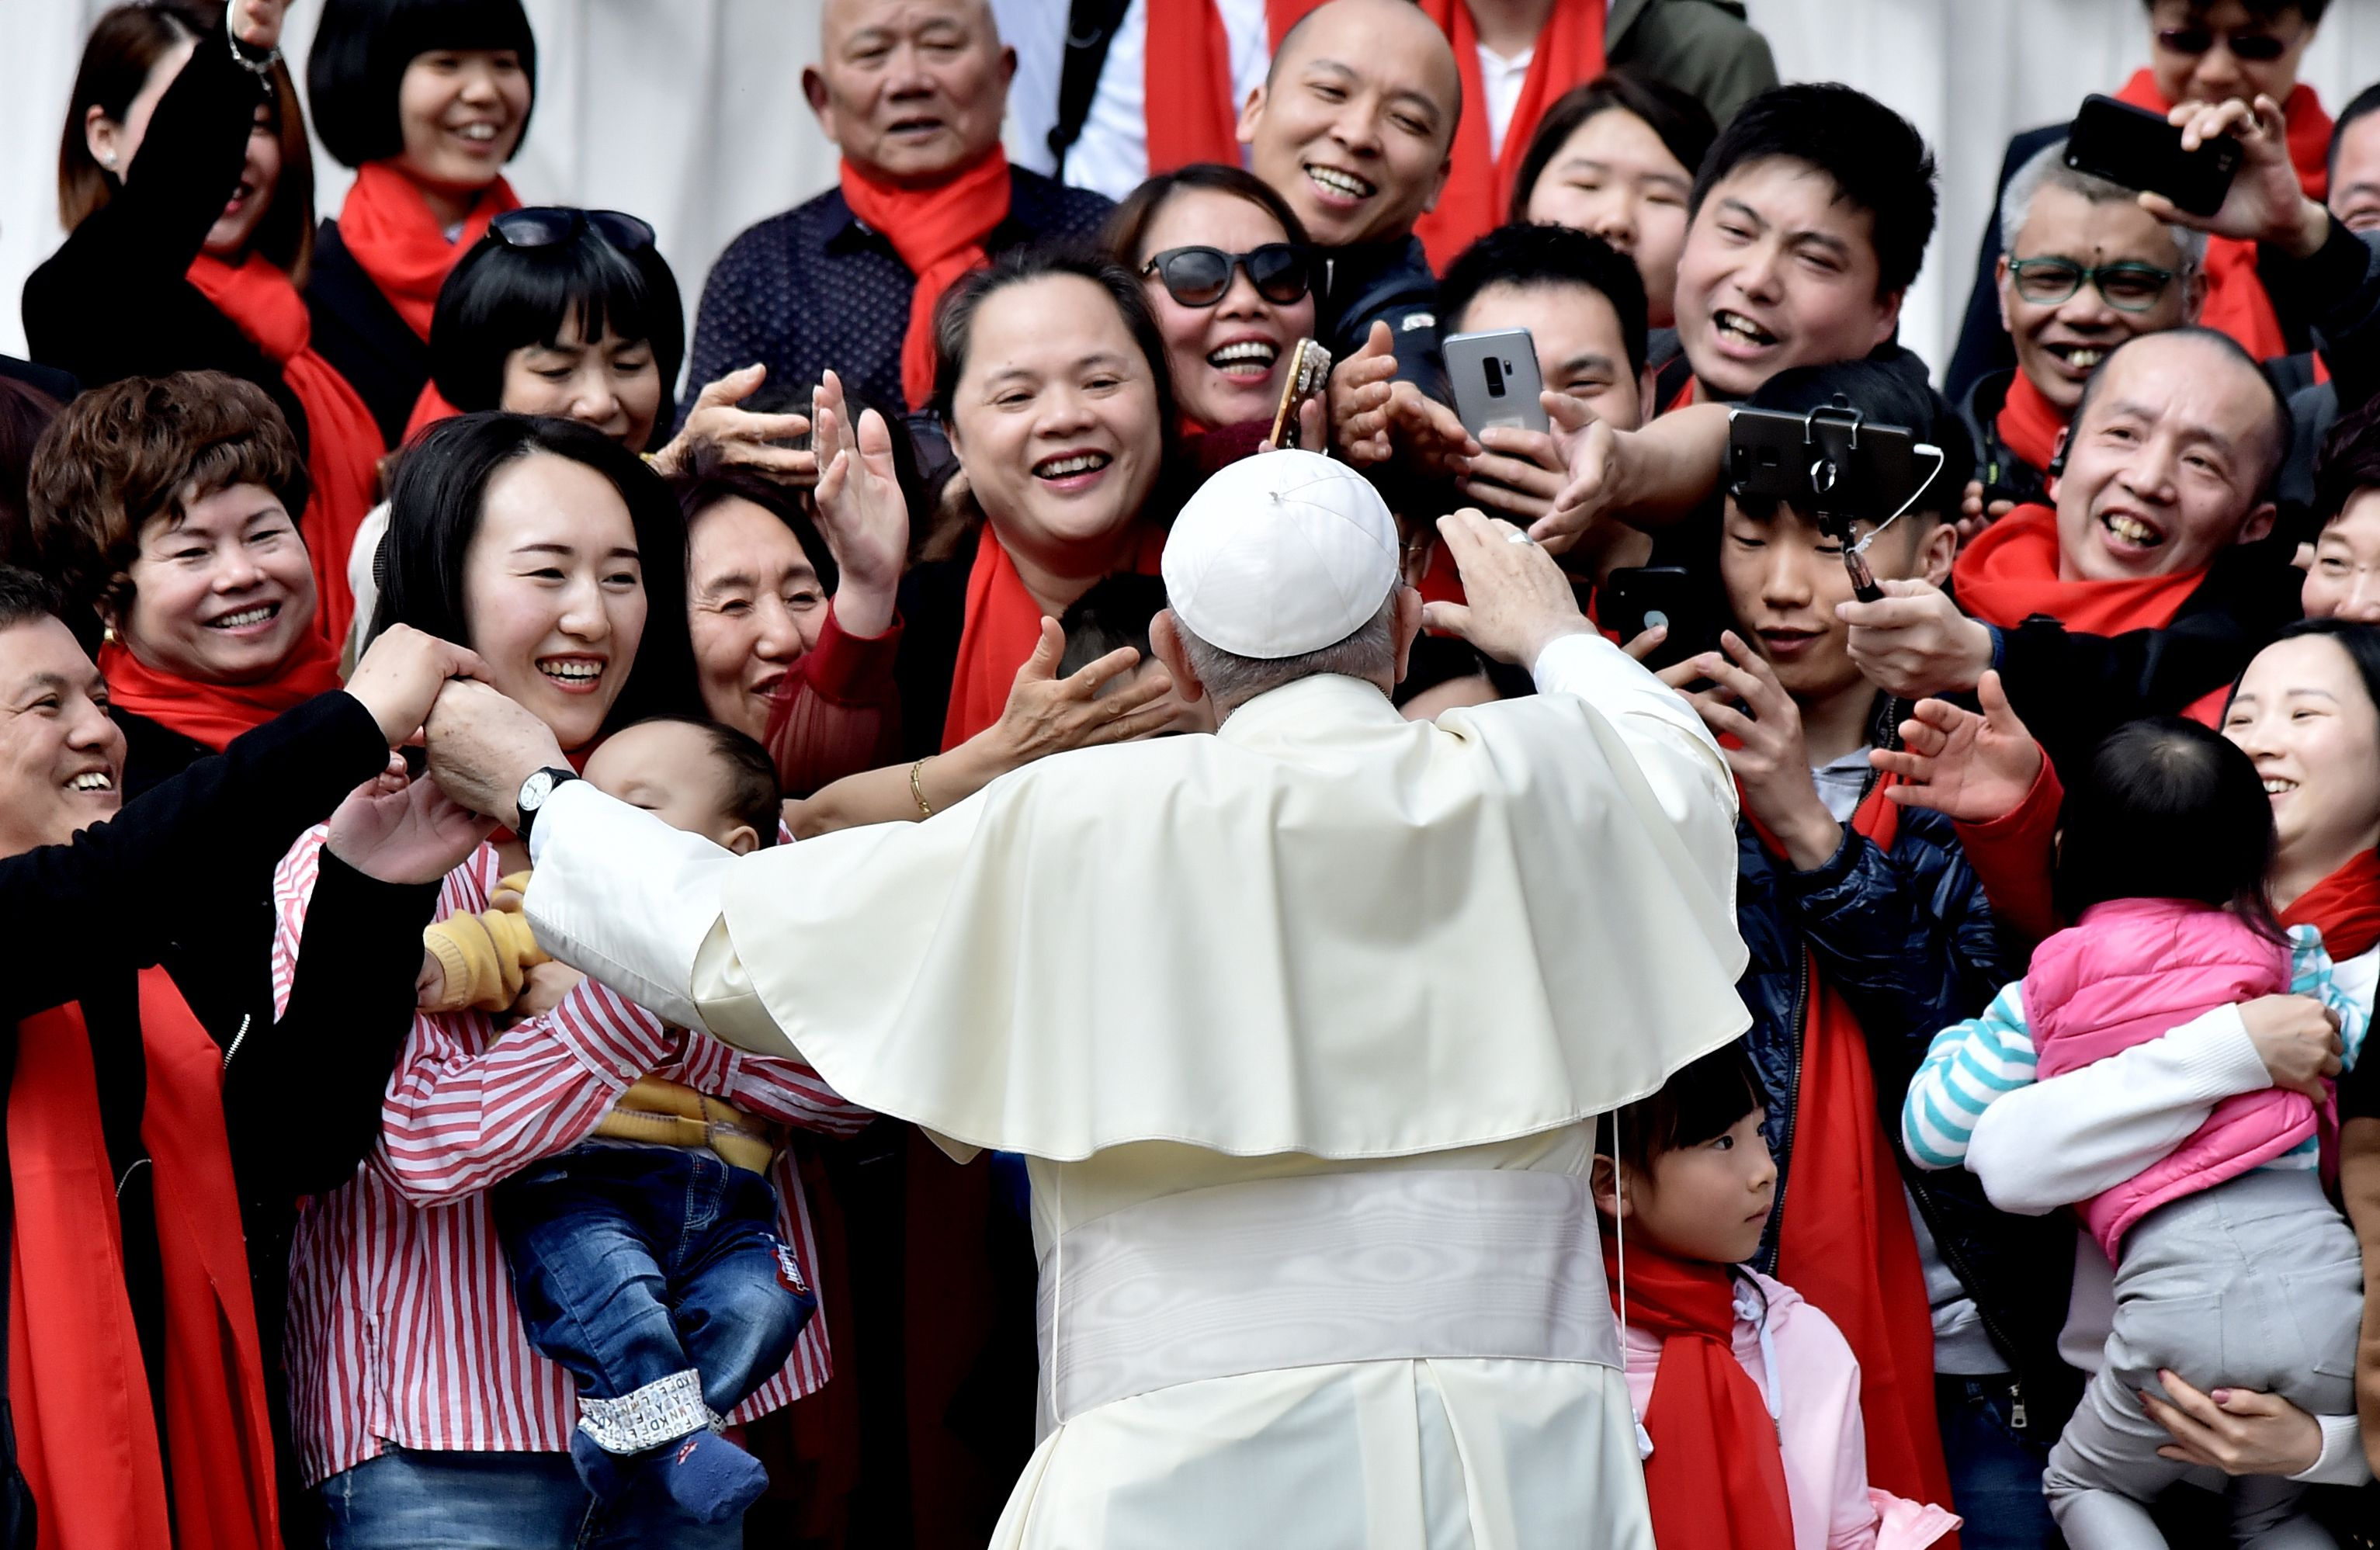 TOPSHOT - Pope Francis greets faithful from China as he arrives for his weekly general audience on April 18, 2018, on St. Peter's square in the Vatican. (Photo by TIZIANA FABI / AFP) (Photo credit should read TIZIANA FABI/AFP via Getty Images)